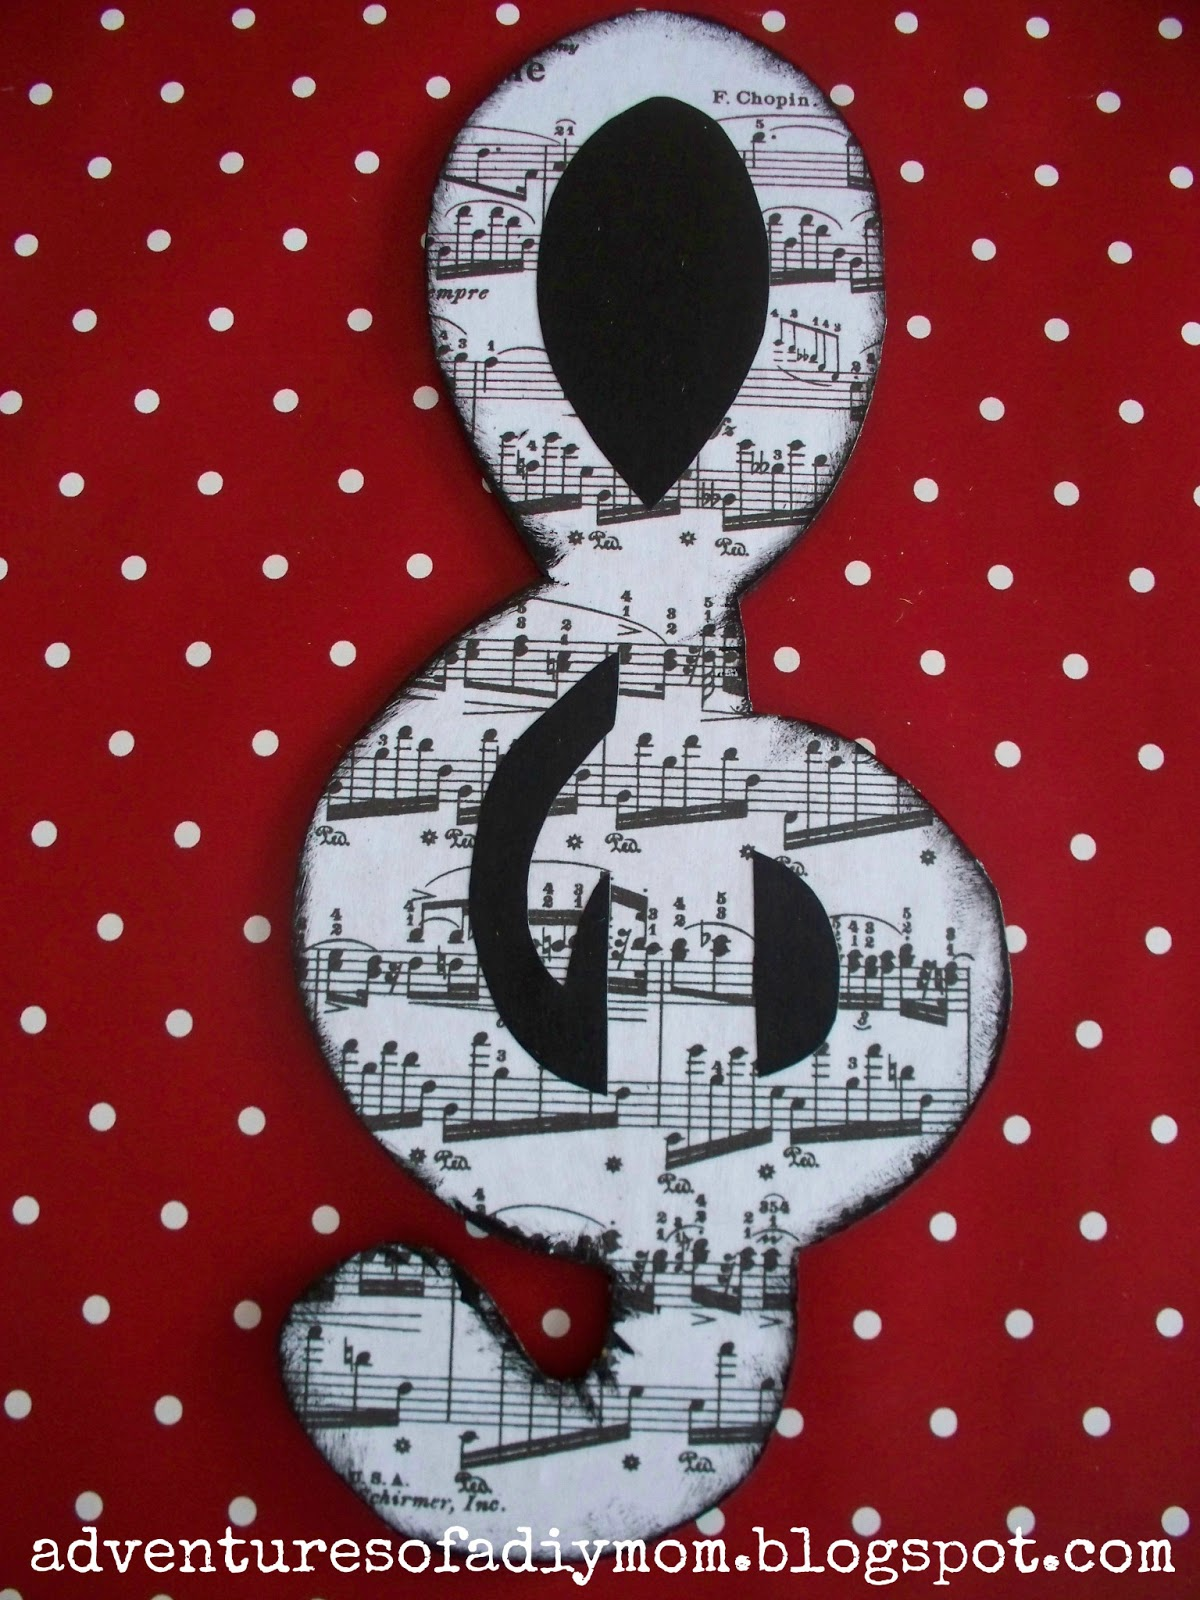 Mod Podge Wooden Music Notes Decor Adventures Of A DIY Mom